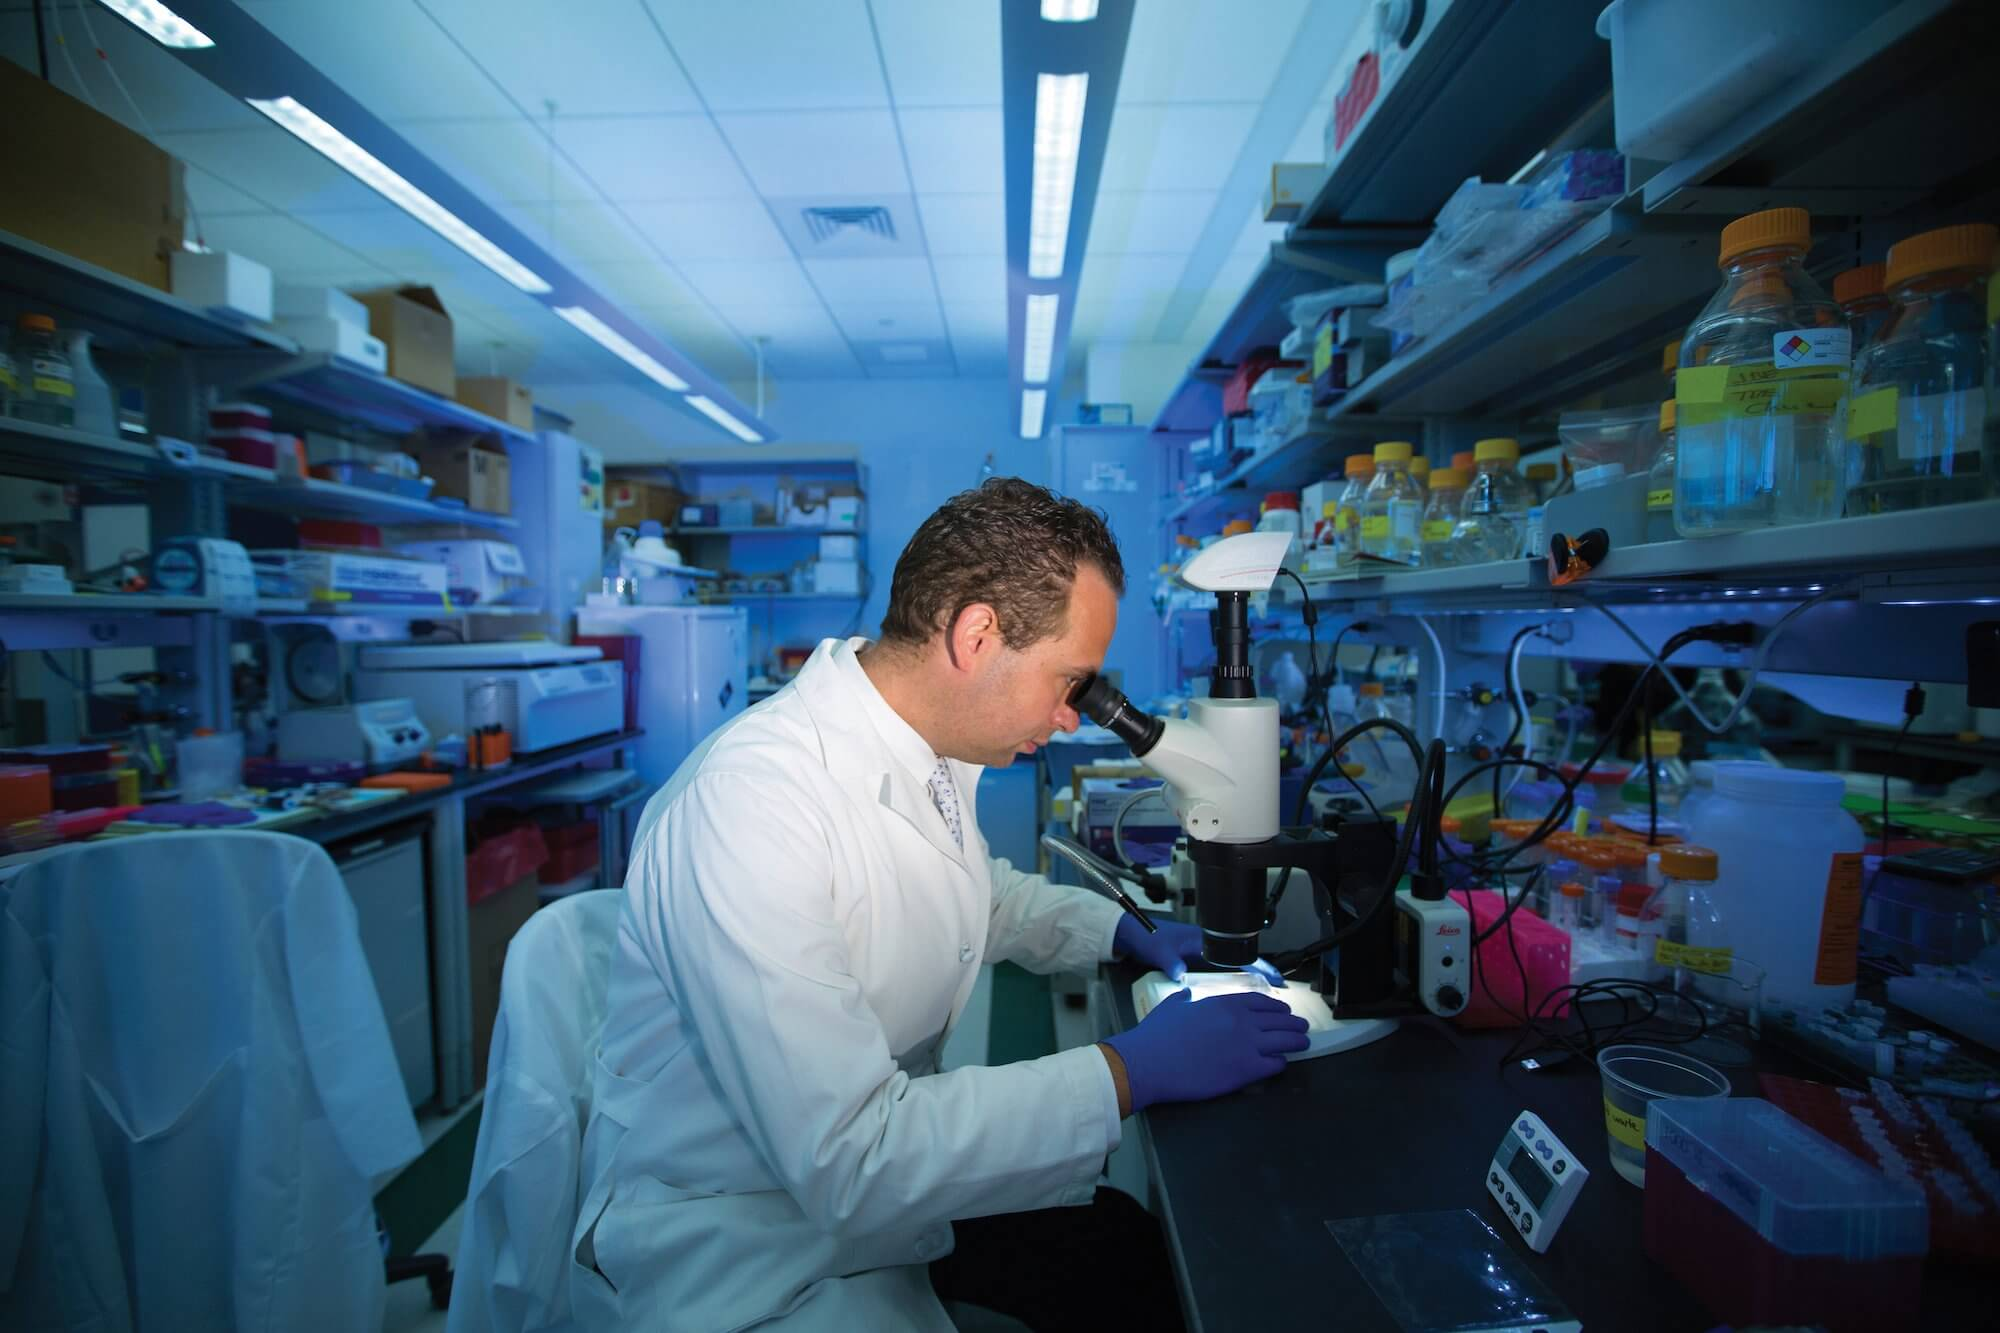 Christian Schaaf, M.D., Ph.D., investigator at the Jan and Dan Duncan Neurological Research Institute at Texas Children's Hospital and assistant professor in the Department of Molecular and Human Genetics at Baylor College of Medicine, in his lab.